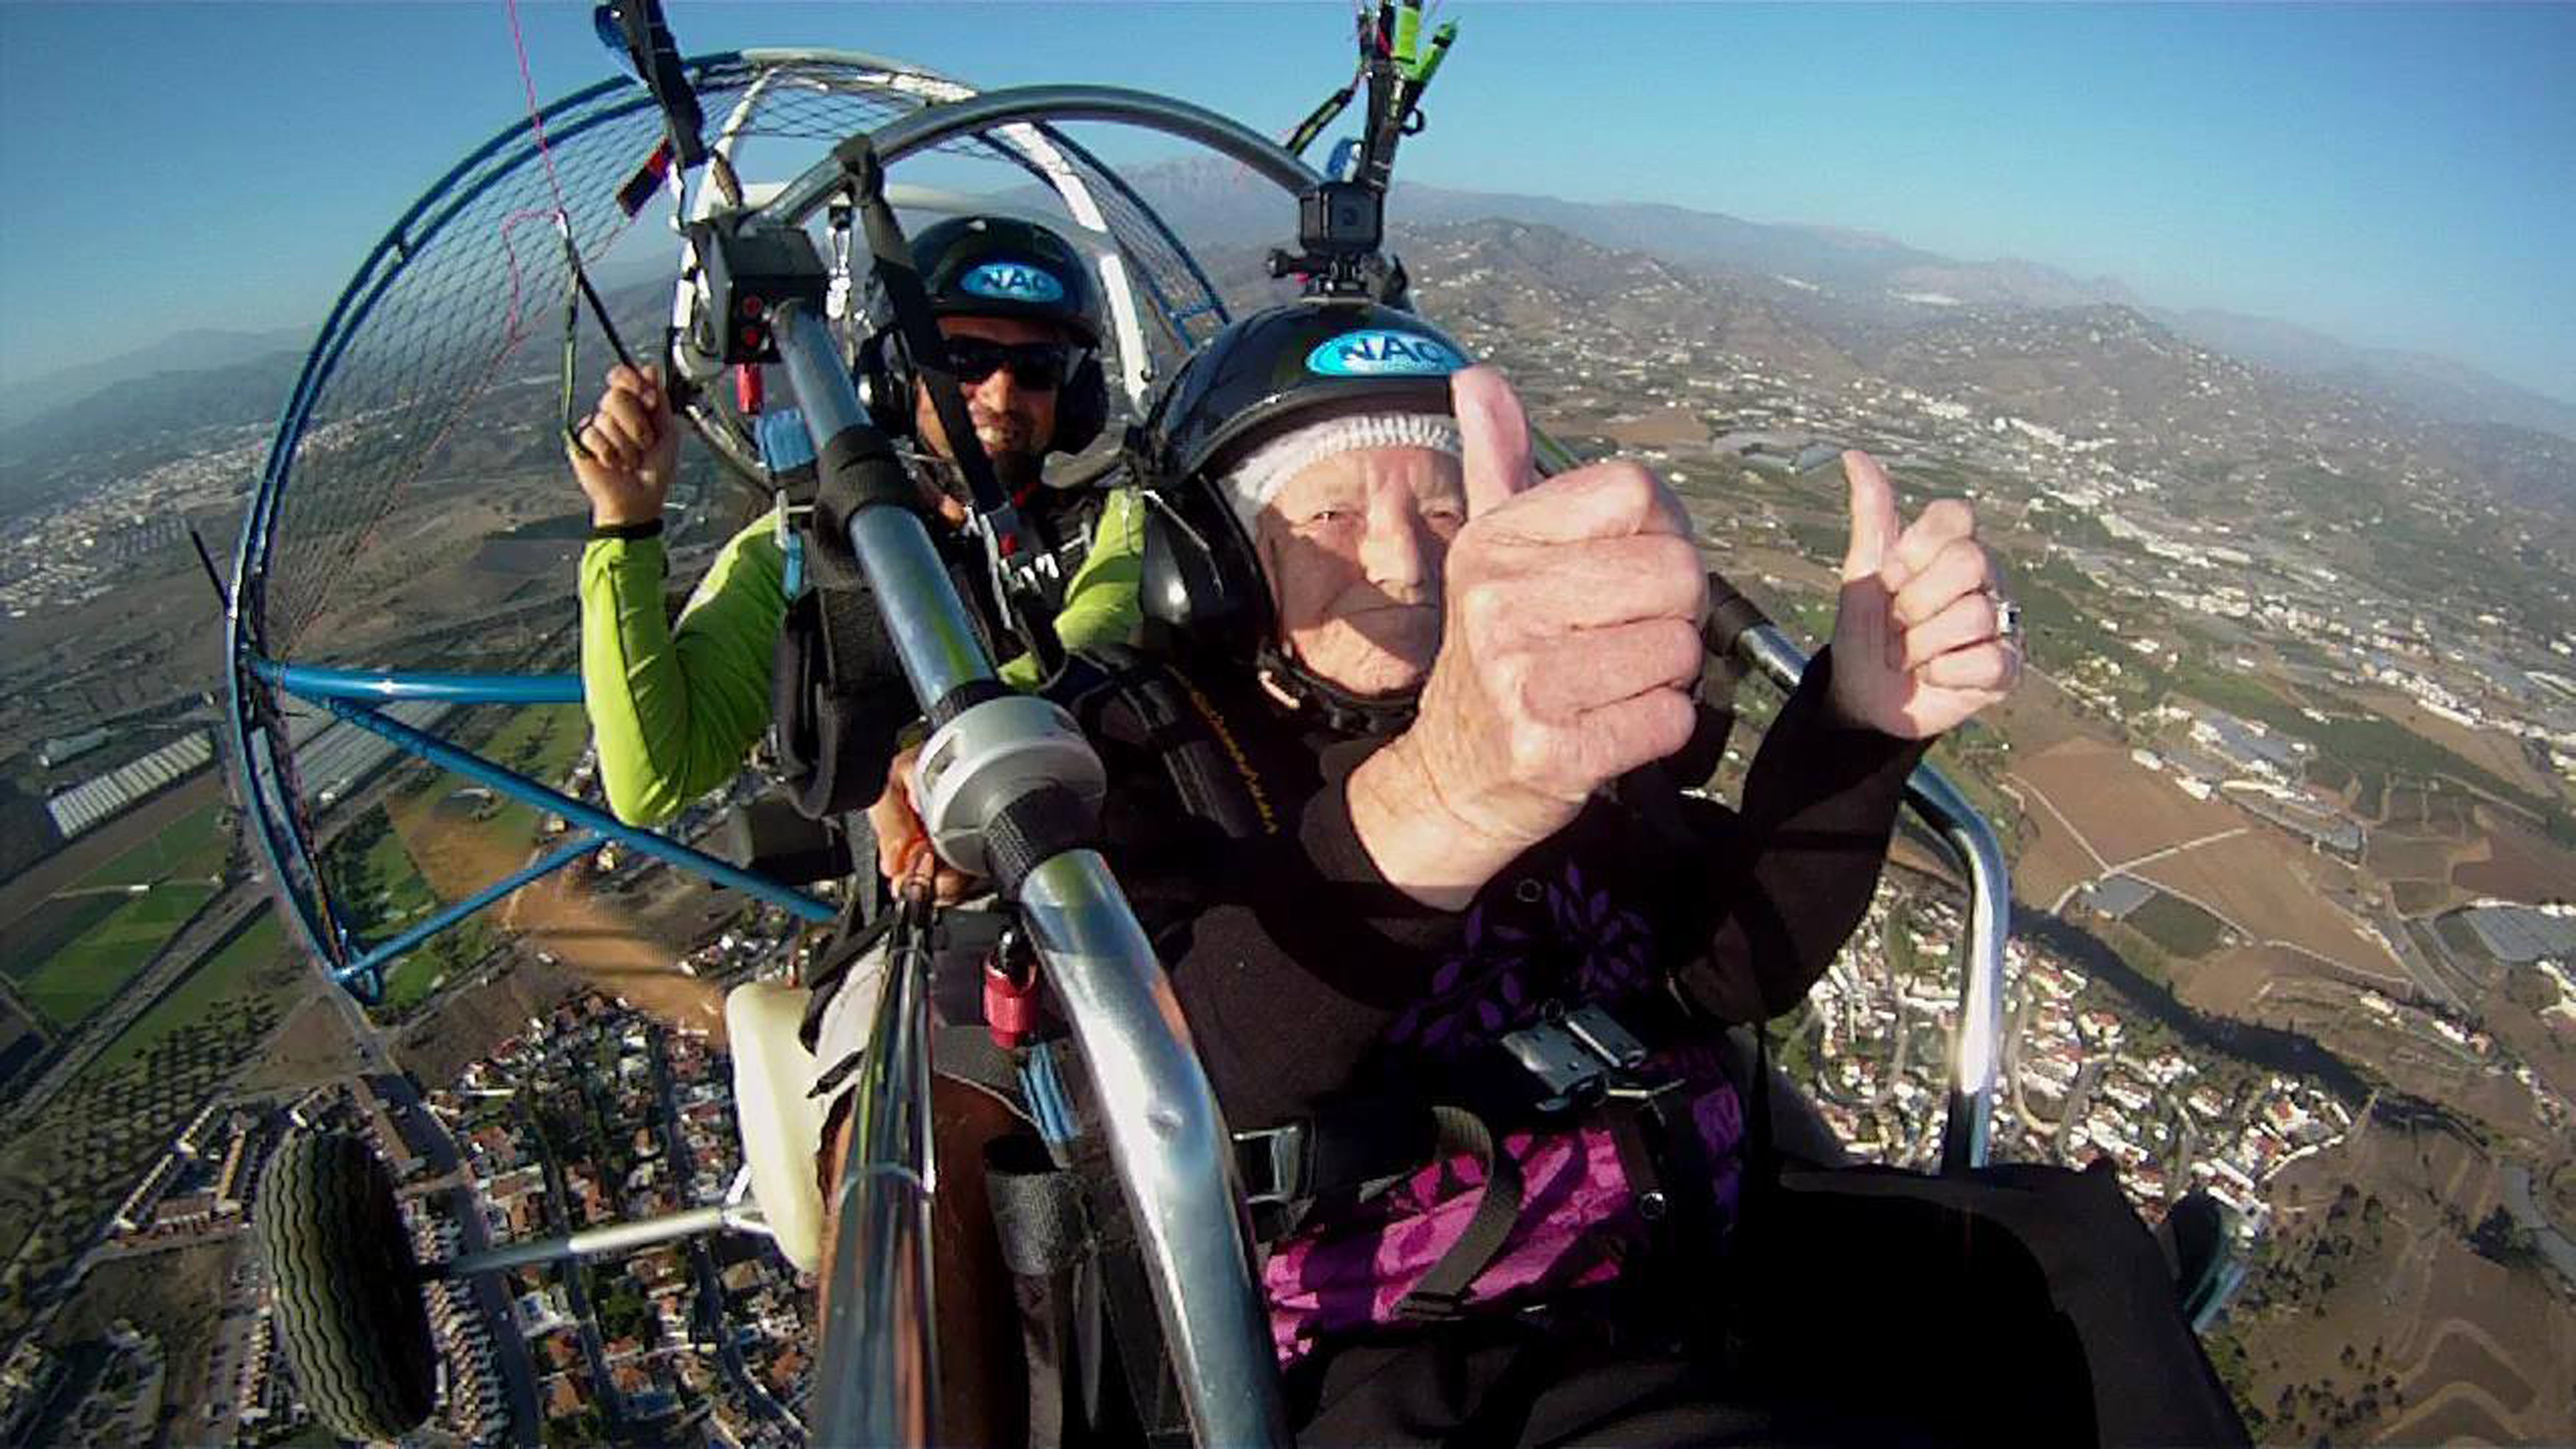 Connie Smith, 90, who went paragliding in southern Spain in aid of her favourite pet charity (PDSA/PA Wire)